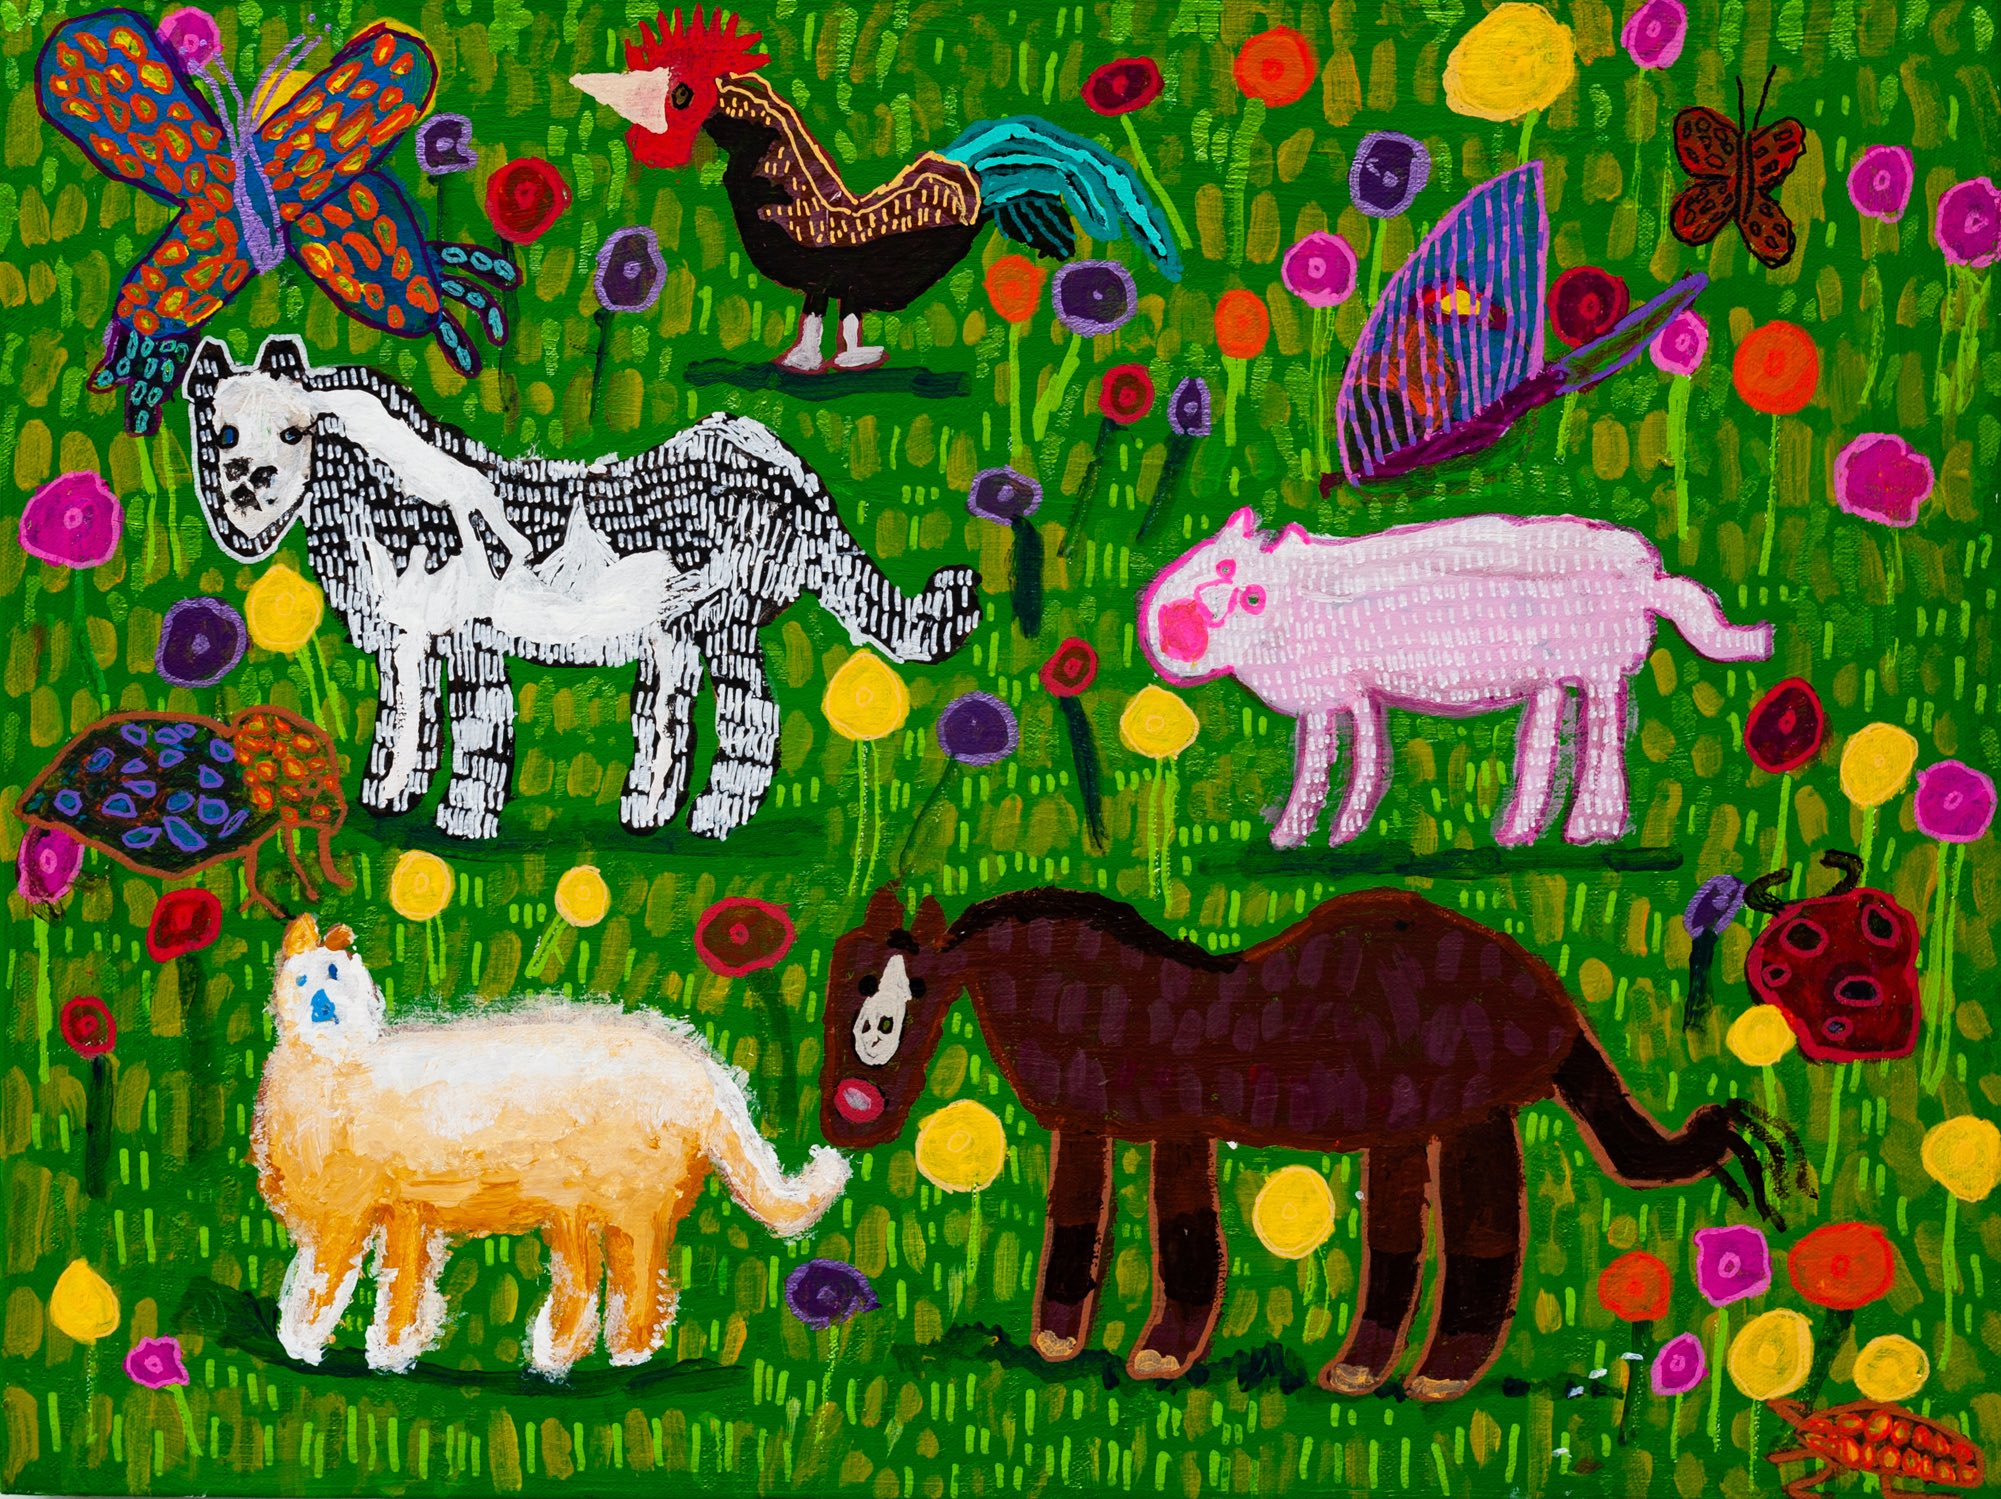 Various fam animals including a chicken, pig and horse eating green grass in a paddock